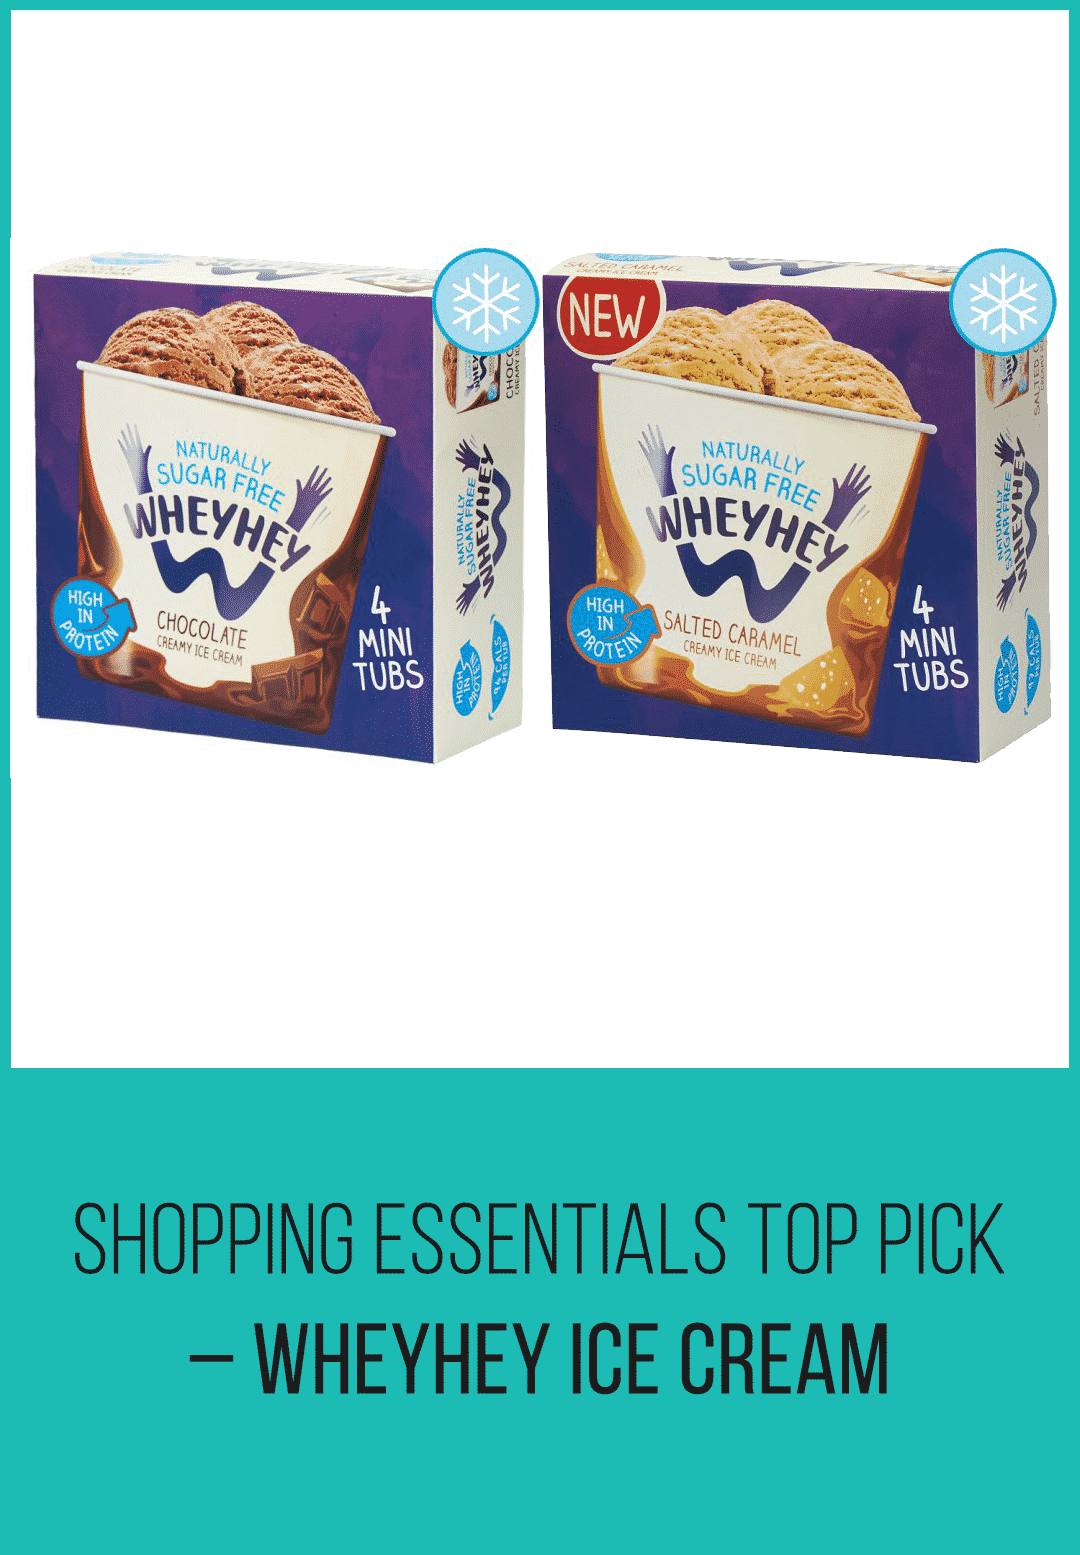 Slimming World Shopping Essentials - Top Pick